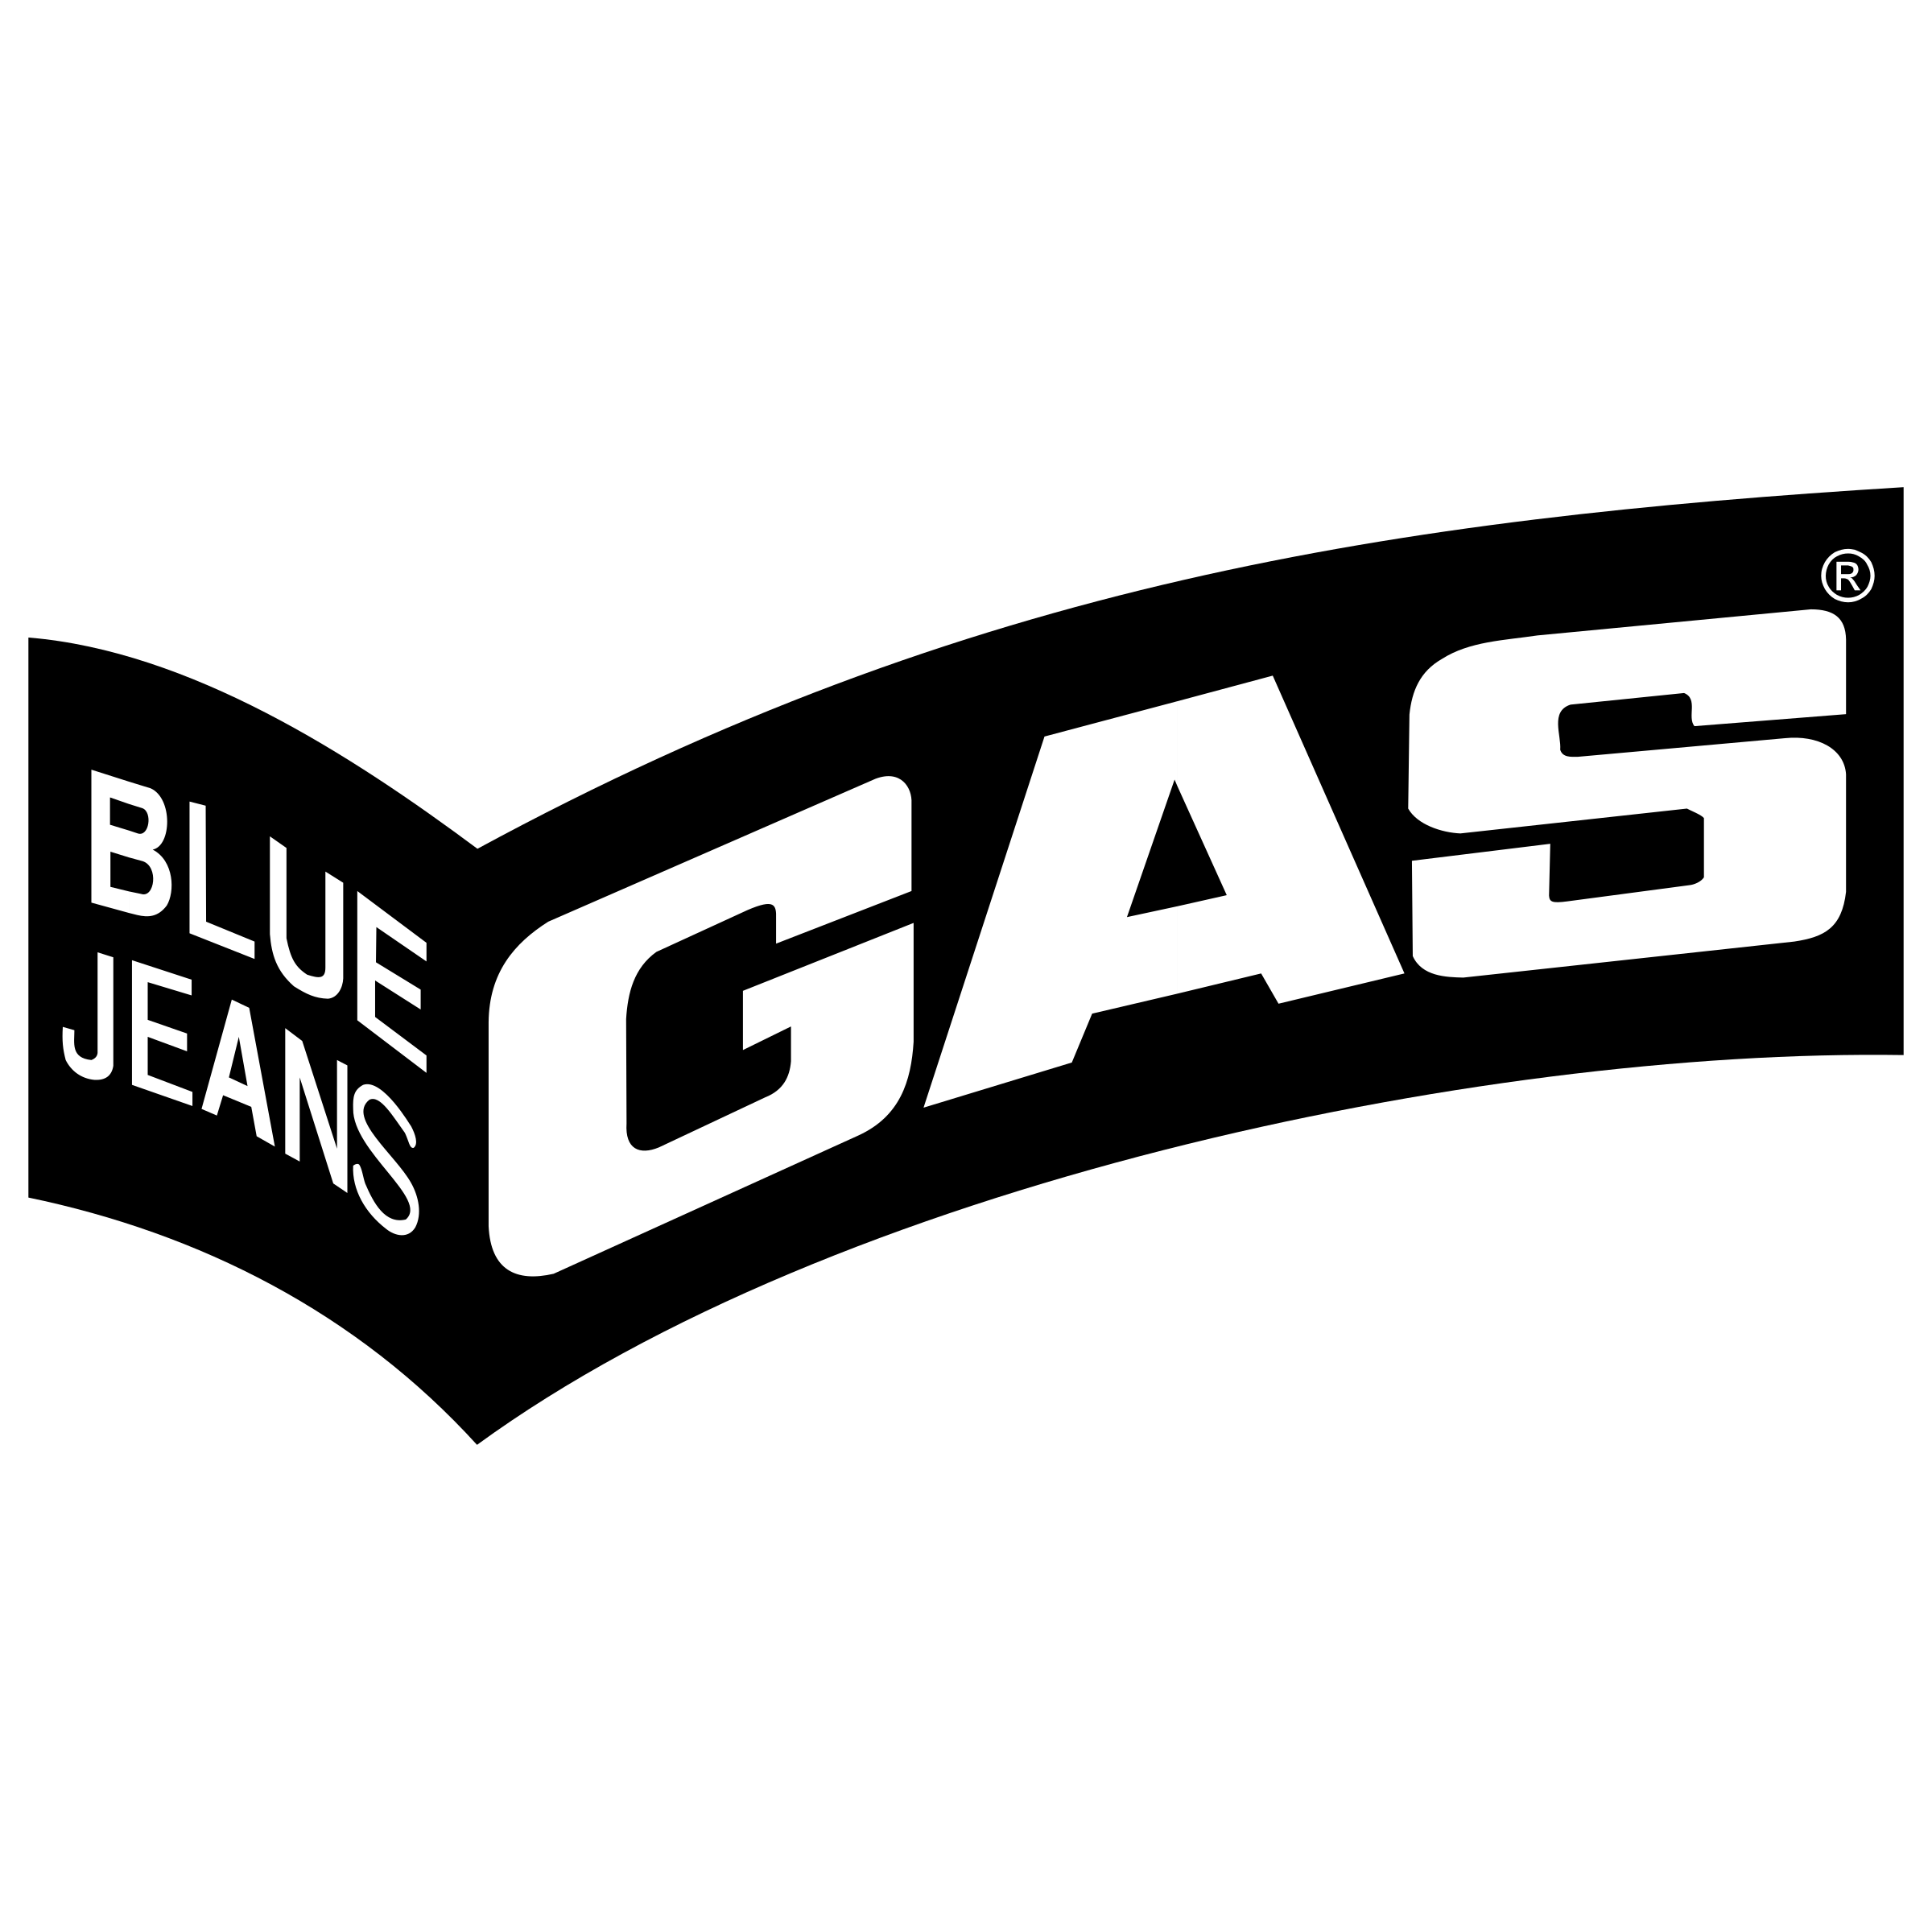 Gas Blue Jeans Logo PNG Transparent & SVG Vector - Freebie Supply